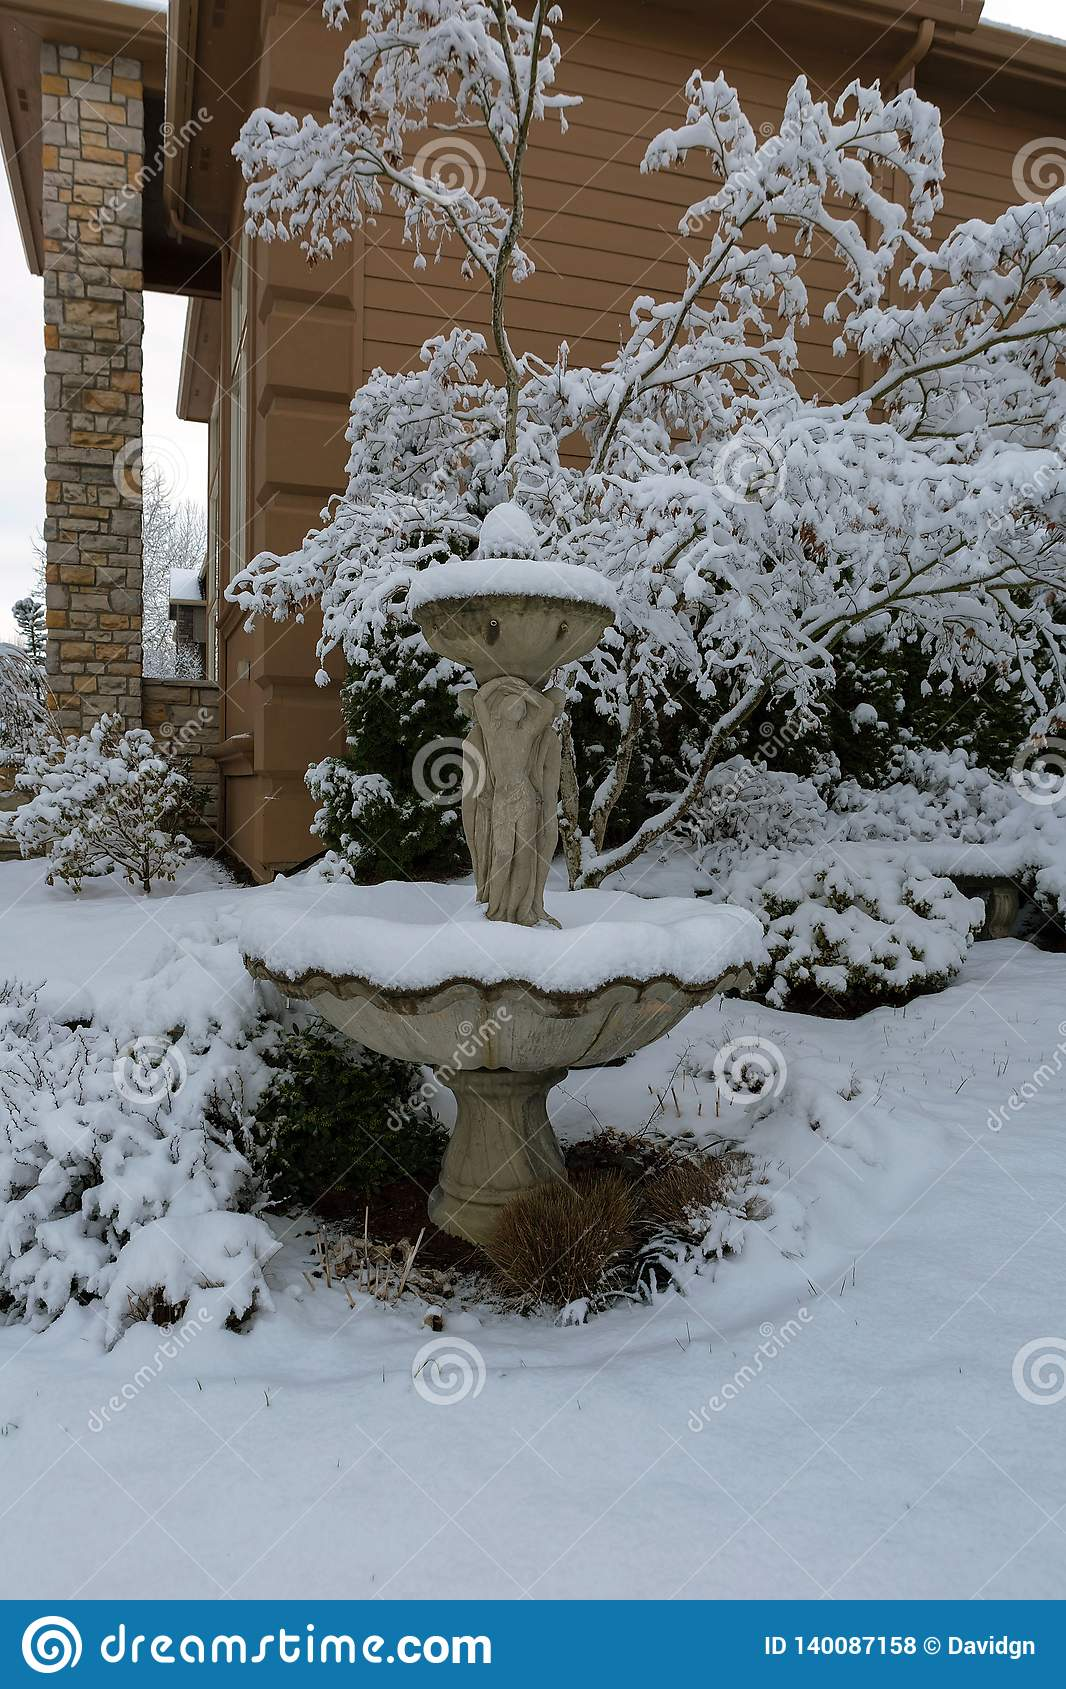 Snow Covered Water Fountain in Front Yard garden